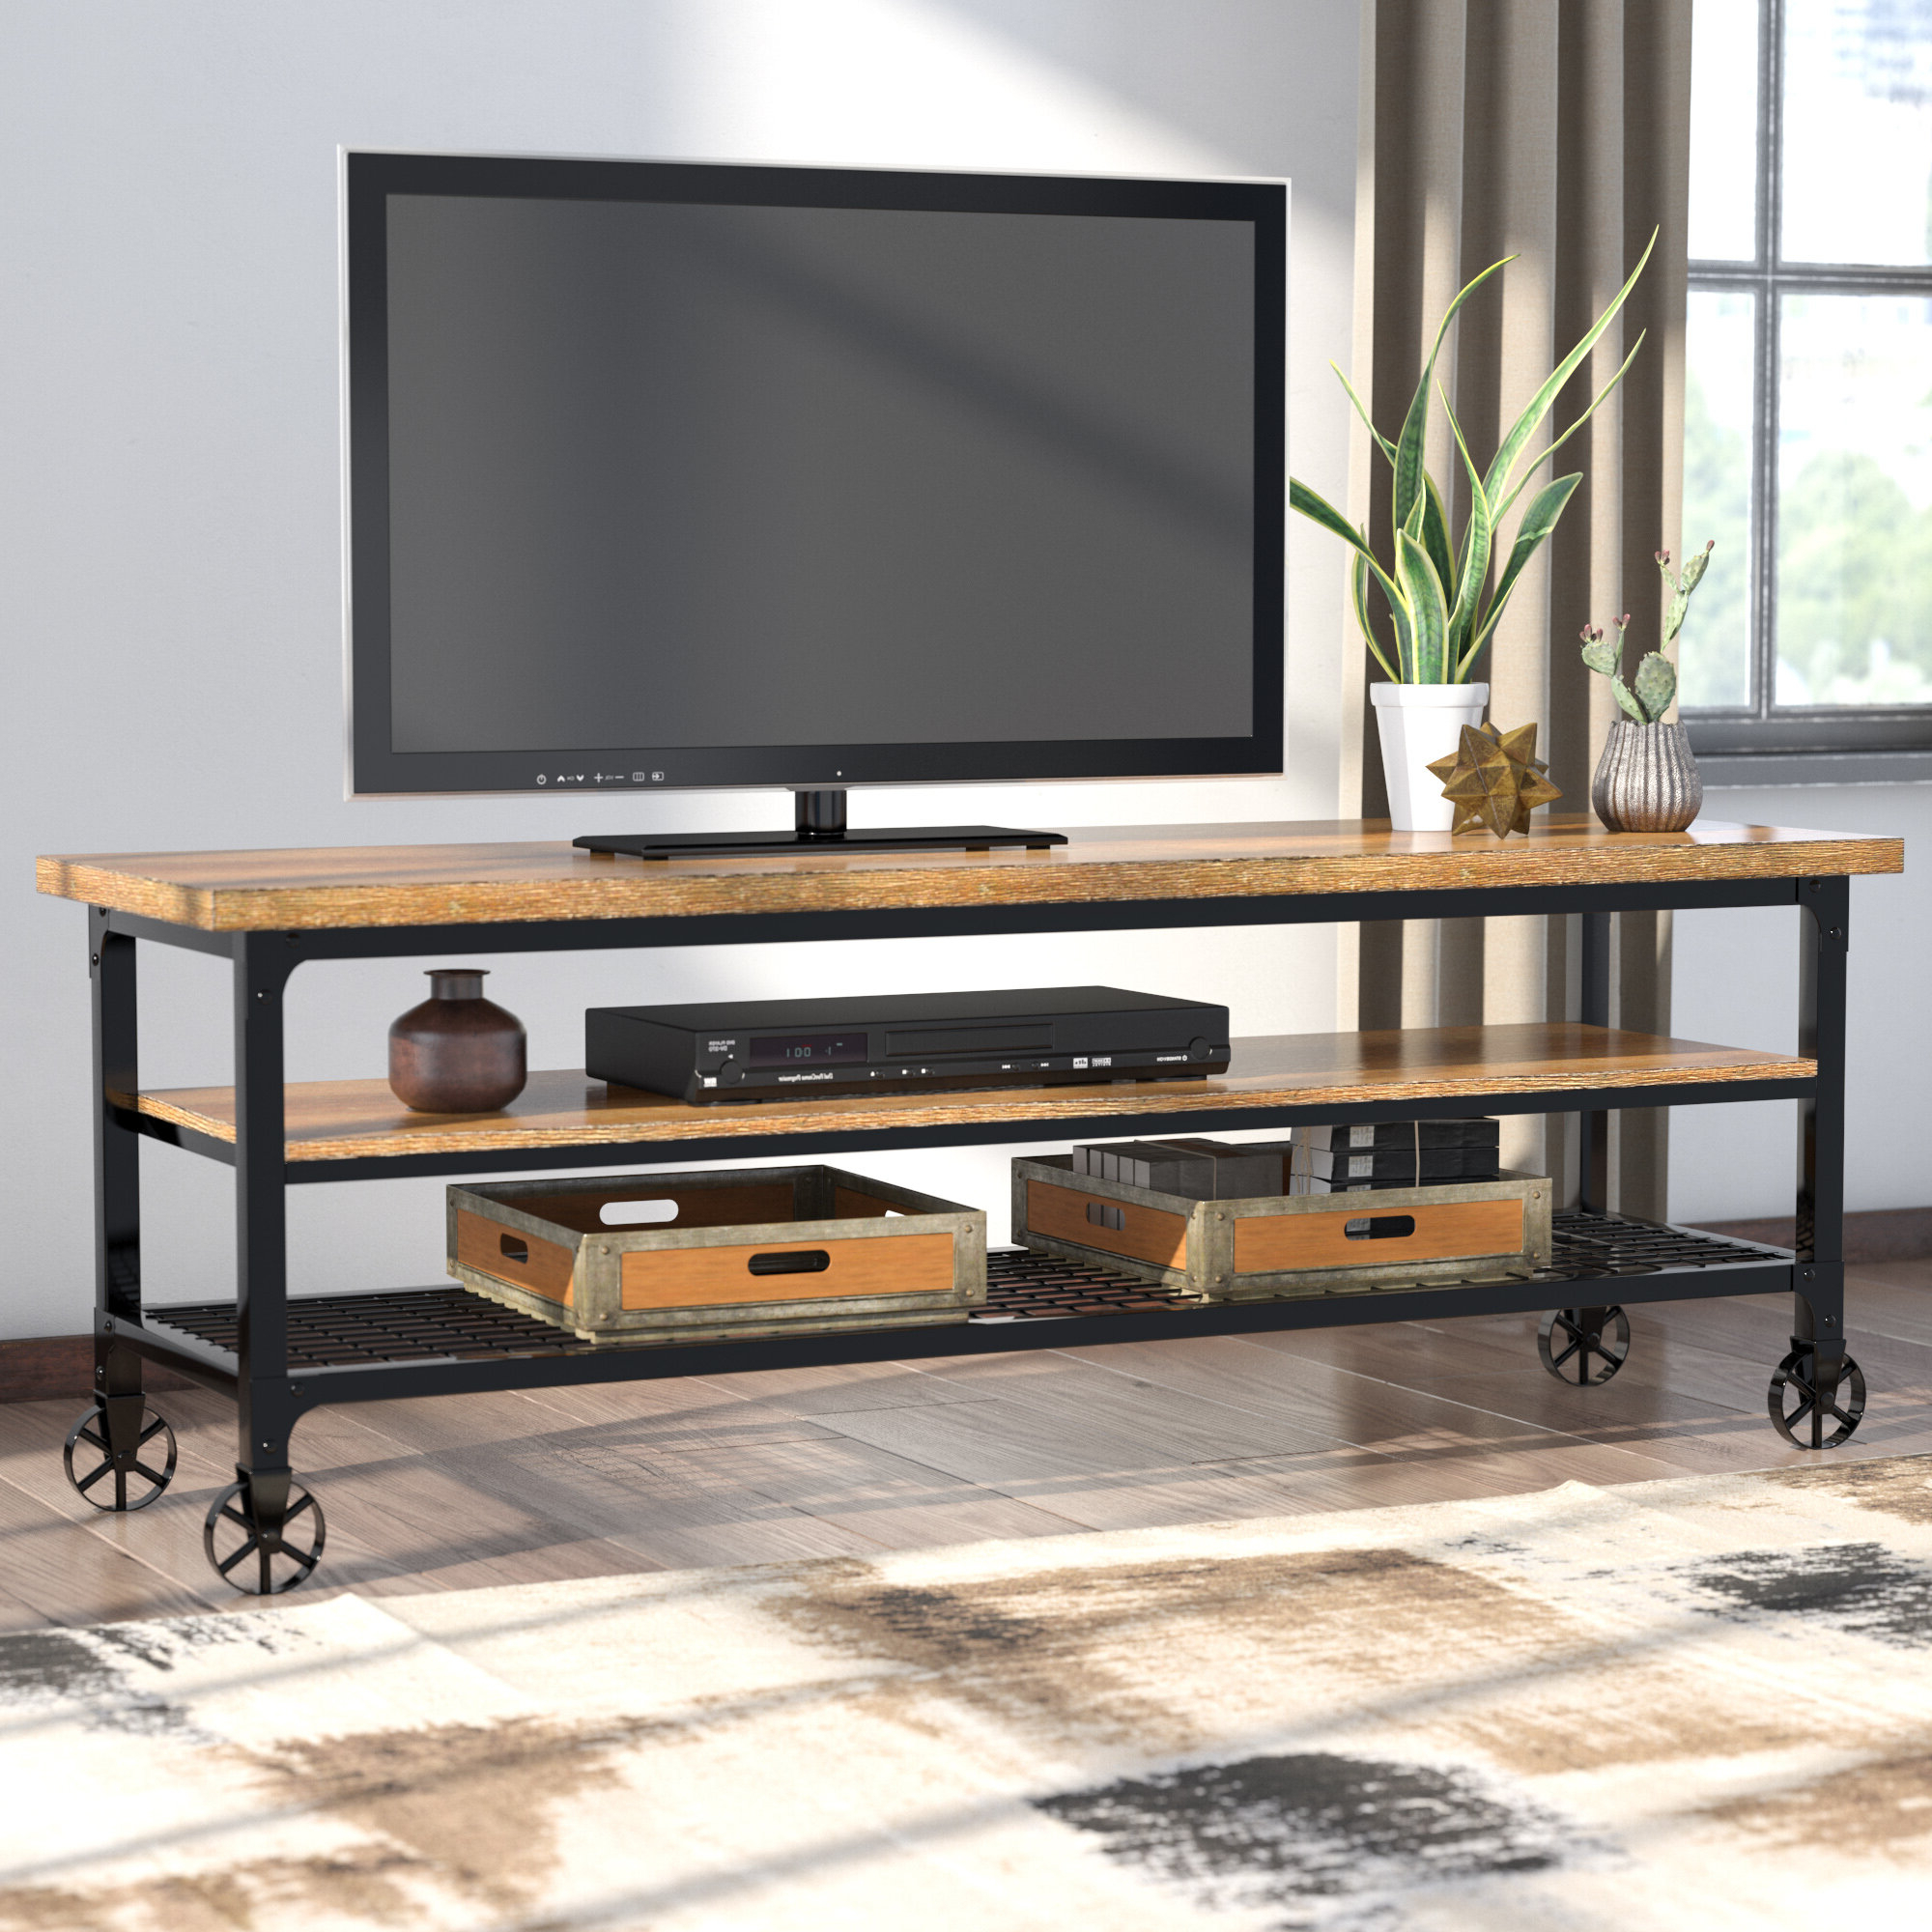 """Lansing Tv Stands For Tvs Up To 55"""" With Regard To Fashionable Tucker 70 Inch Television Stand In White Wash Finish Tv (View 10 of 25)"""